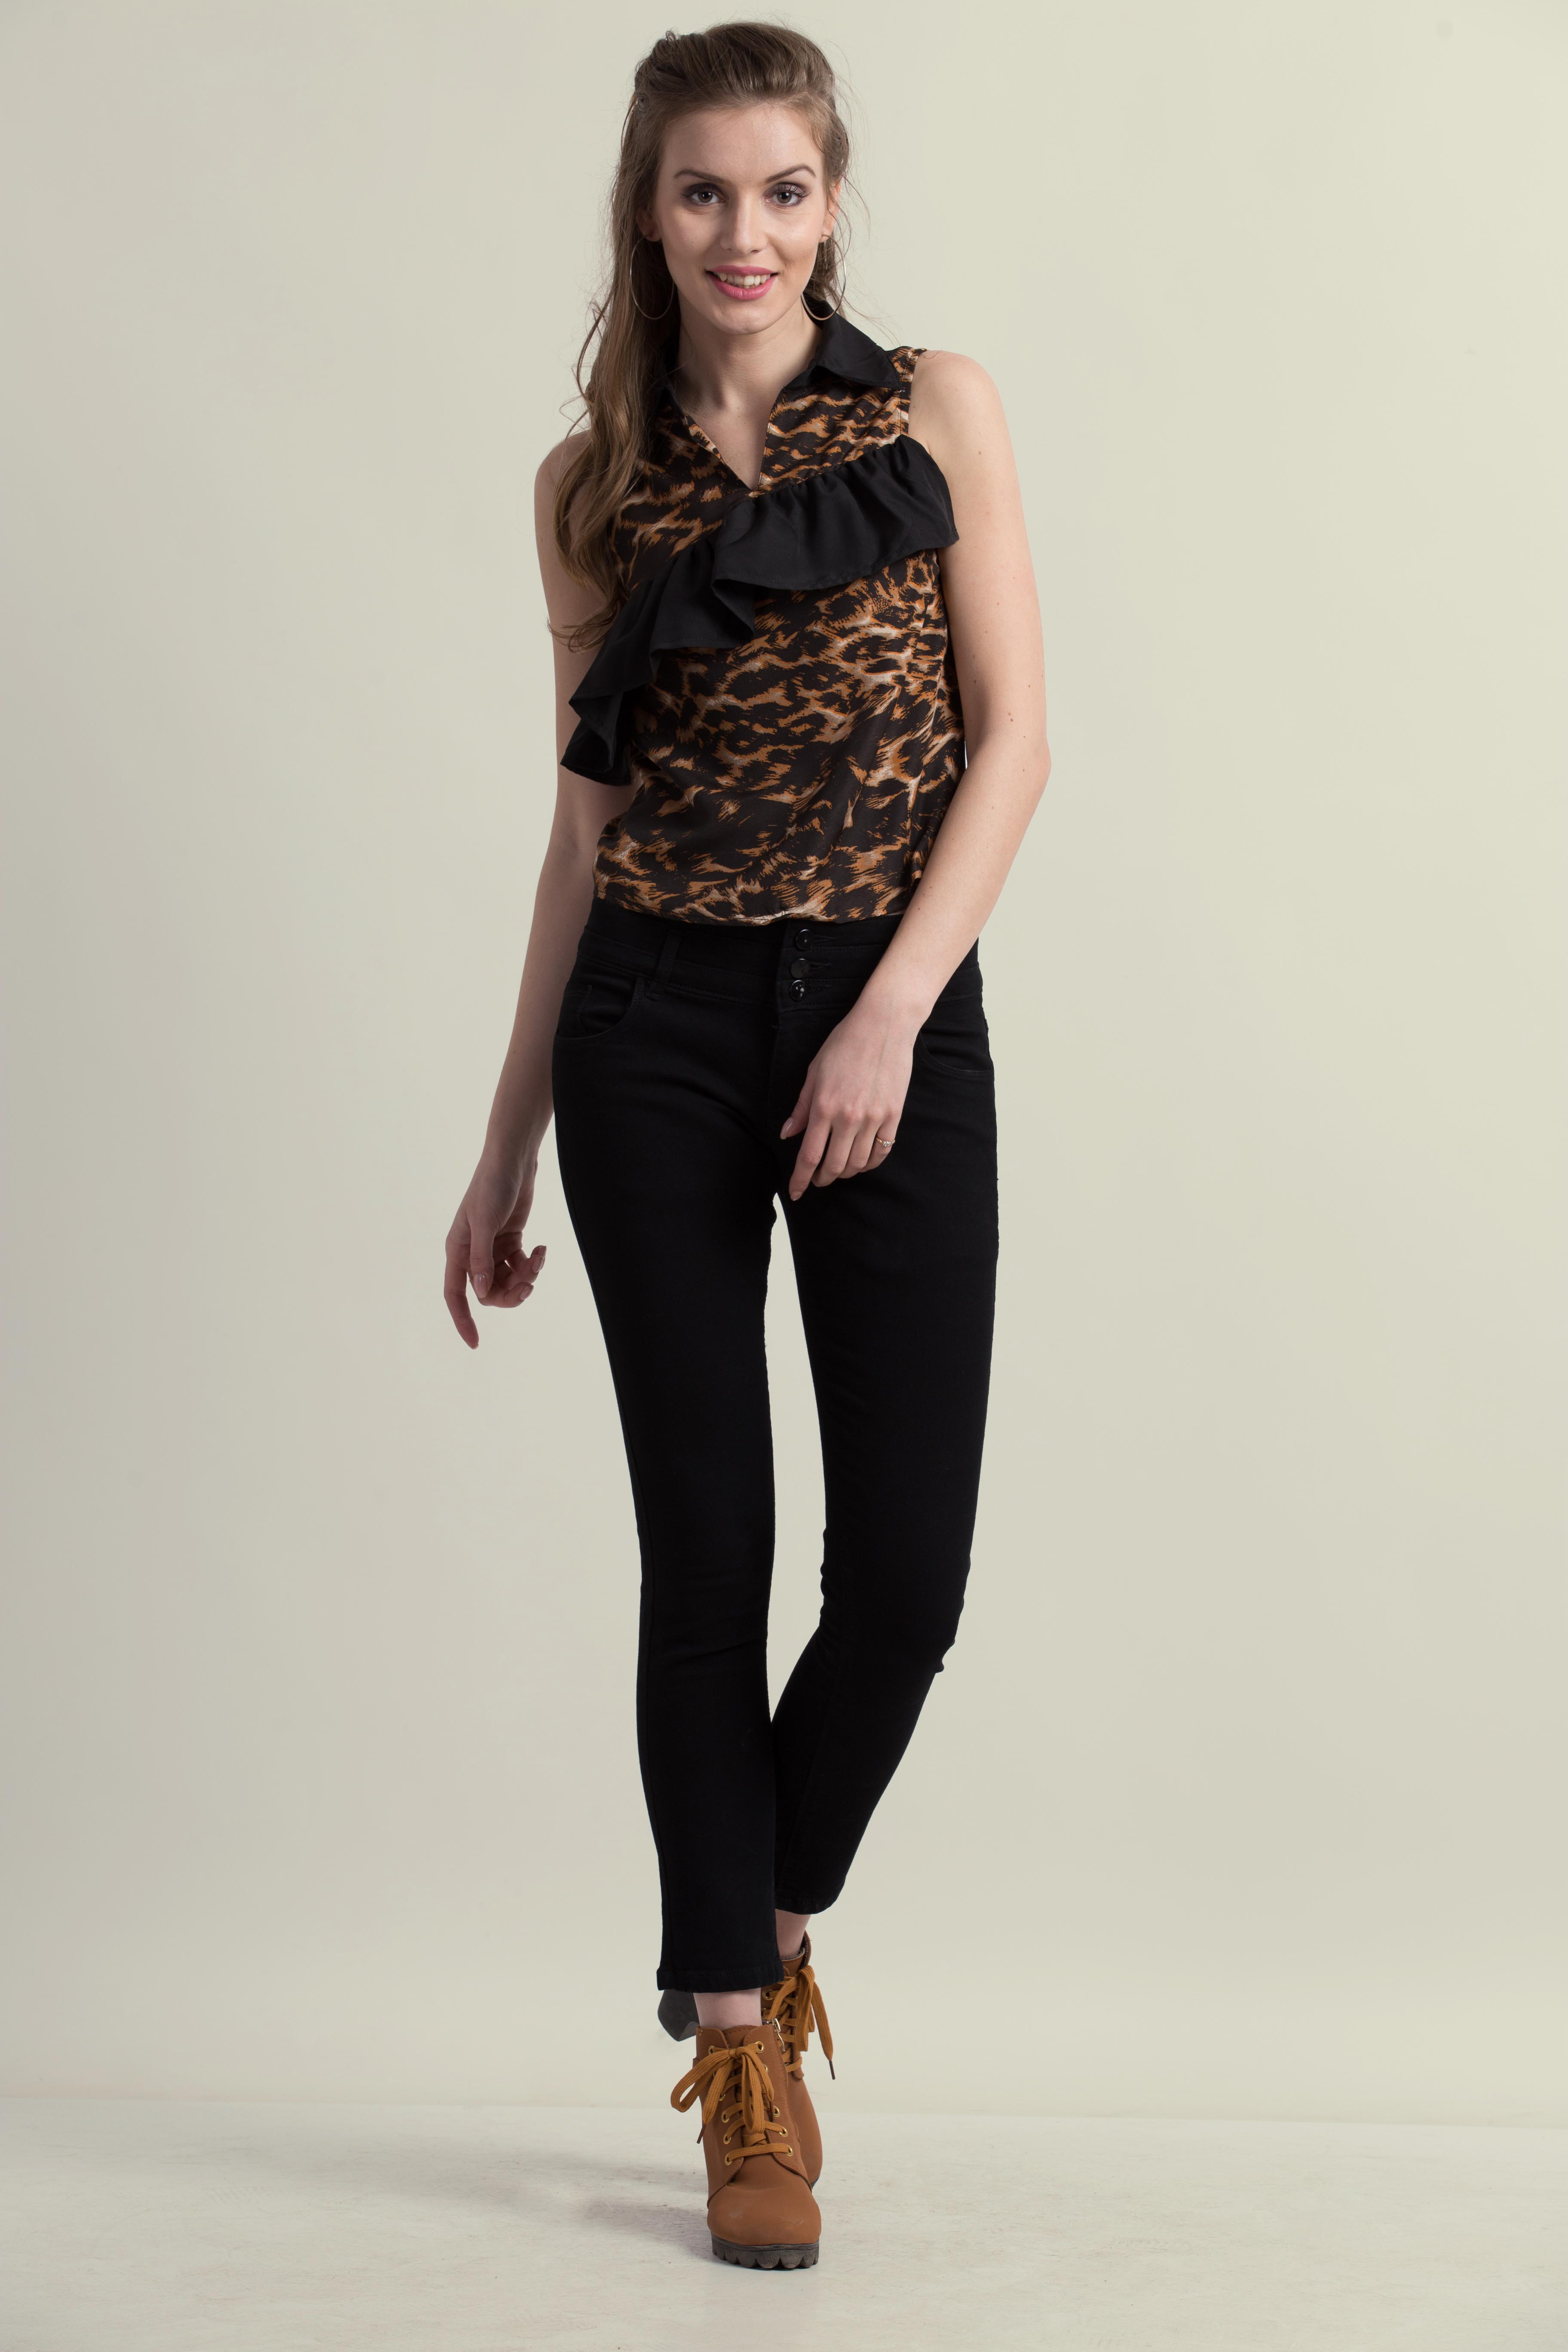 Folle Brown Animal Print Frill Party Wear Top